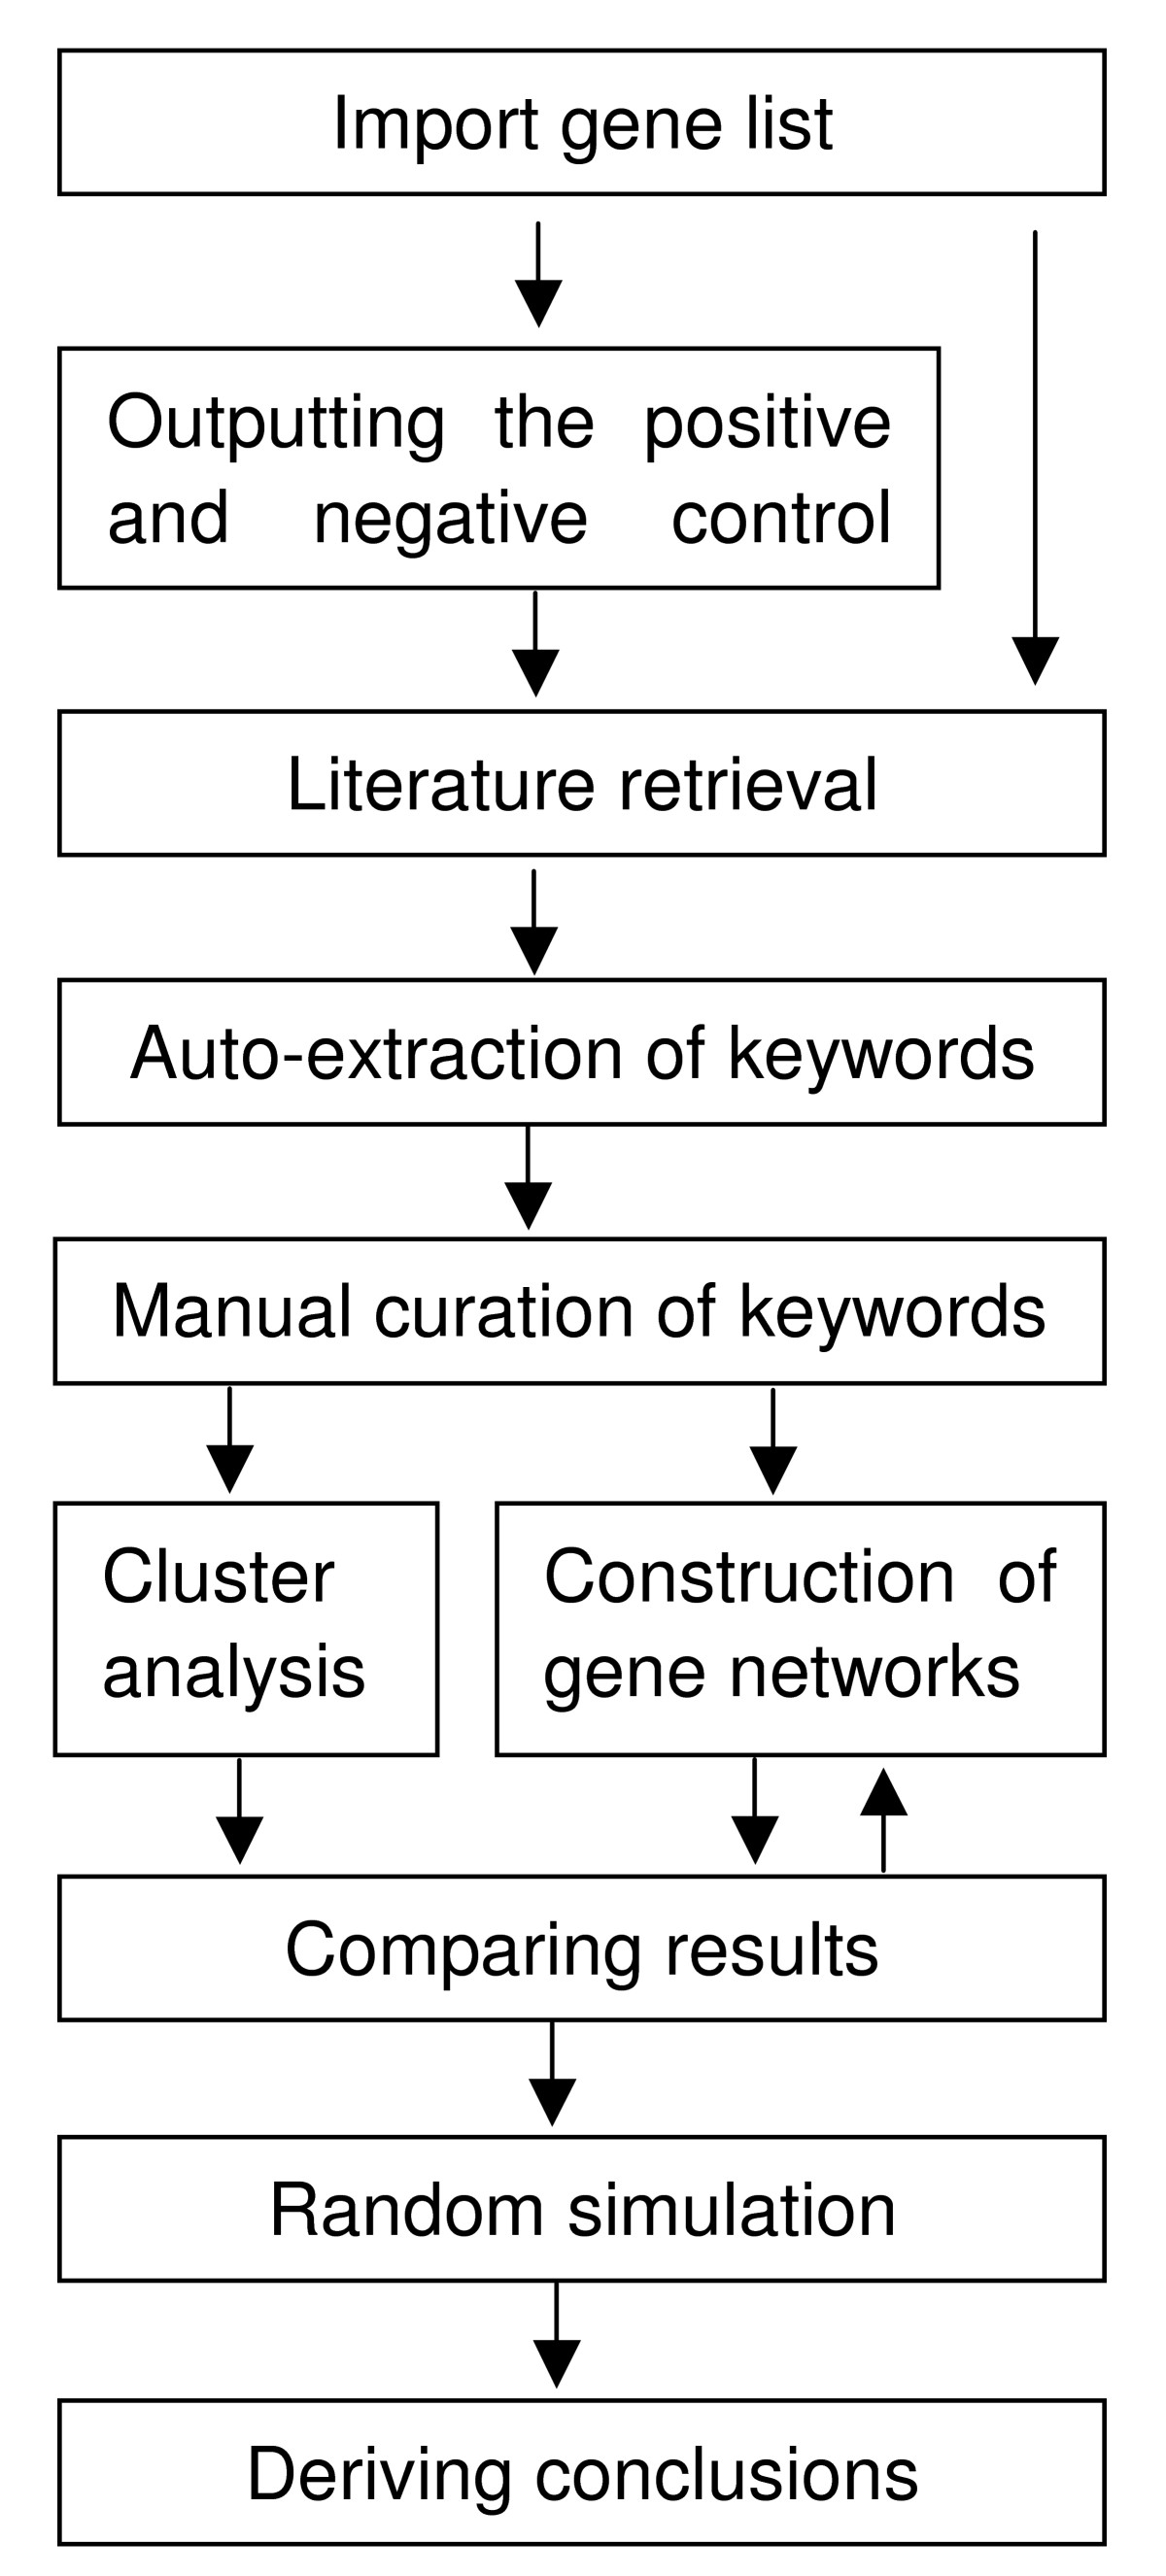 http://static-content.springer.com/image/art%3A10.1186%2F1471-2105-9-308/MediaObjects/12859_2008_Article_2293_Fig1_HTML.jpg